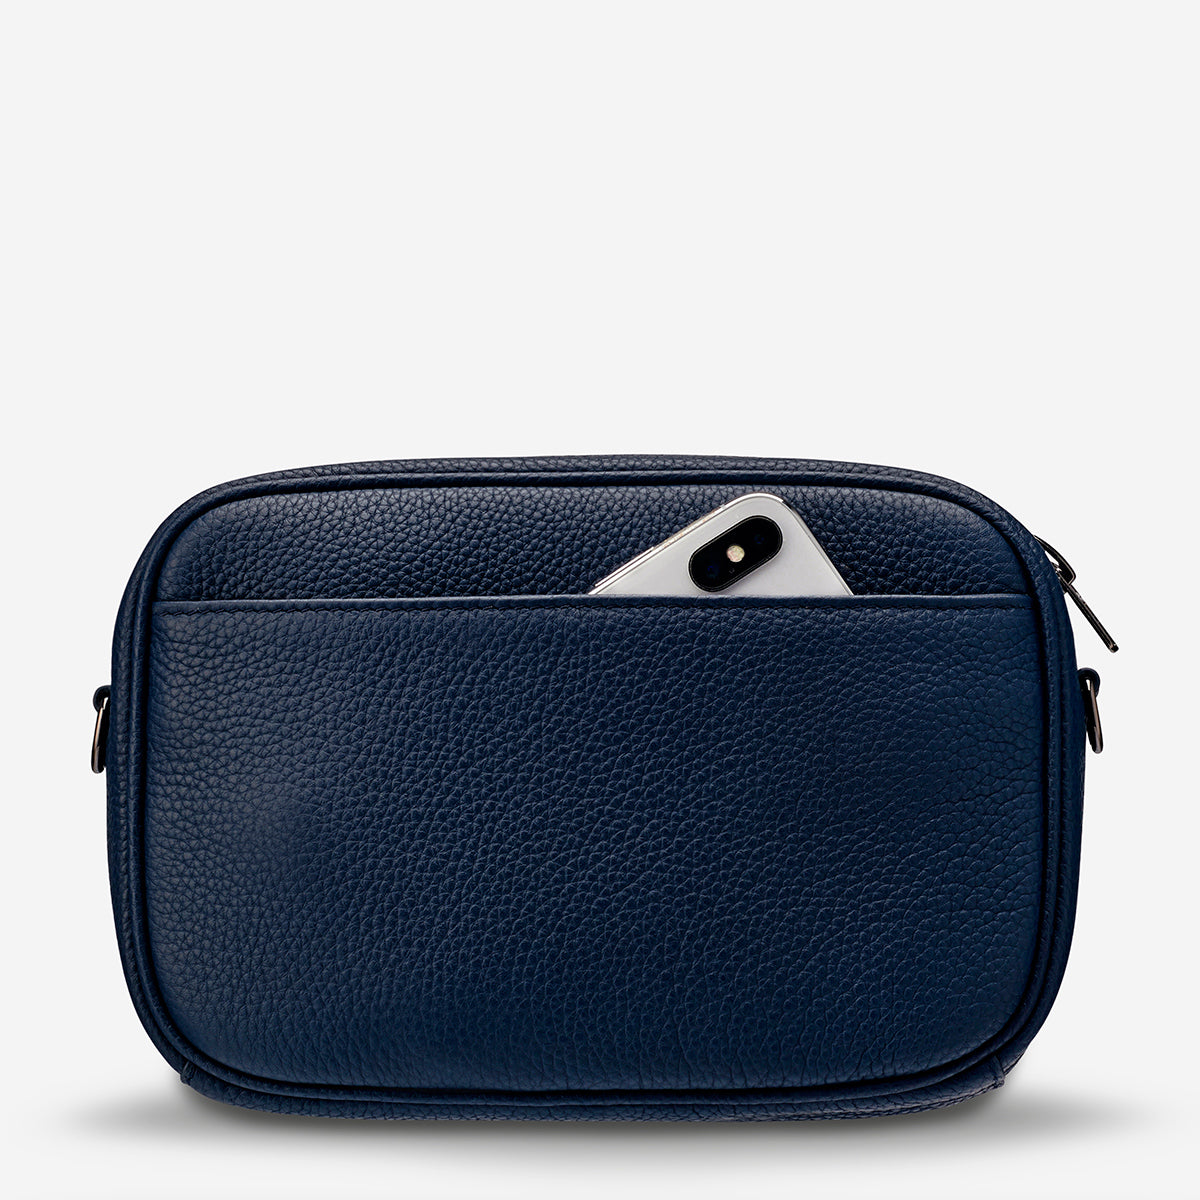 Status Anxiety Plunder Women's Crossbody Leather Bag - Navy Blue